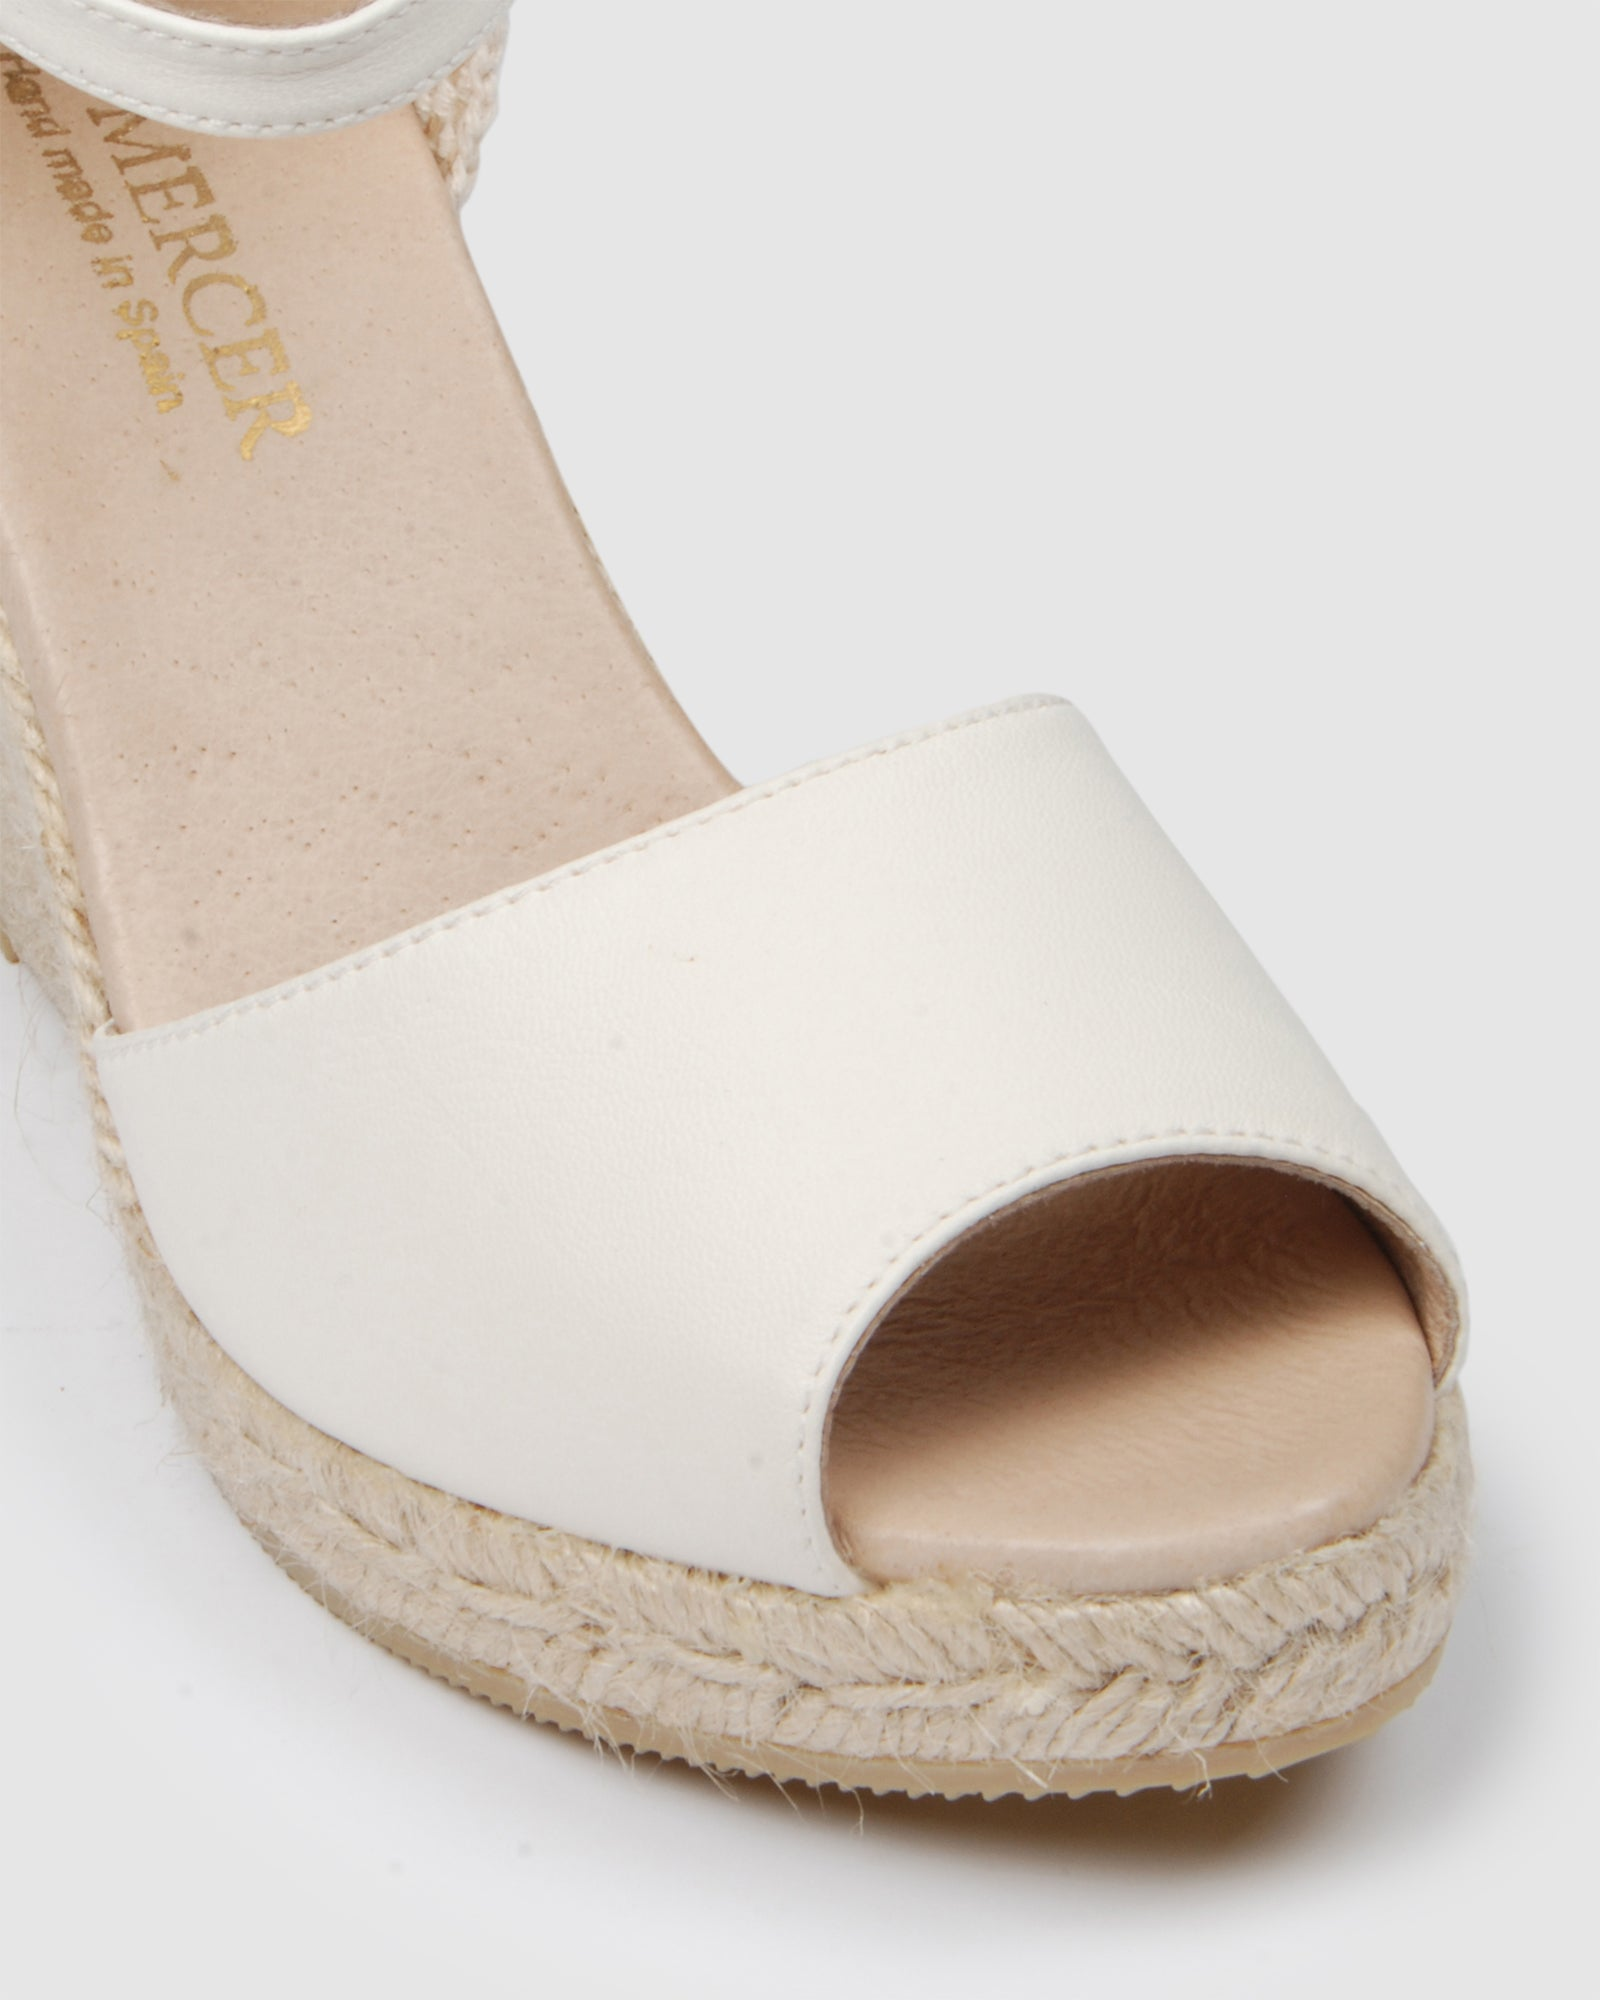 OPHRA HIGH HEEL WEDGE ESPADRILLES WHITE LEATHER